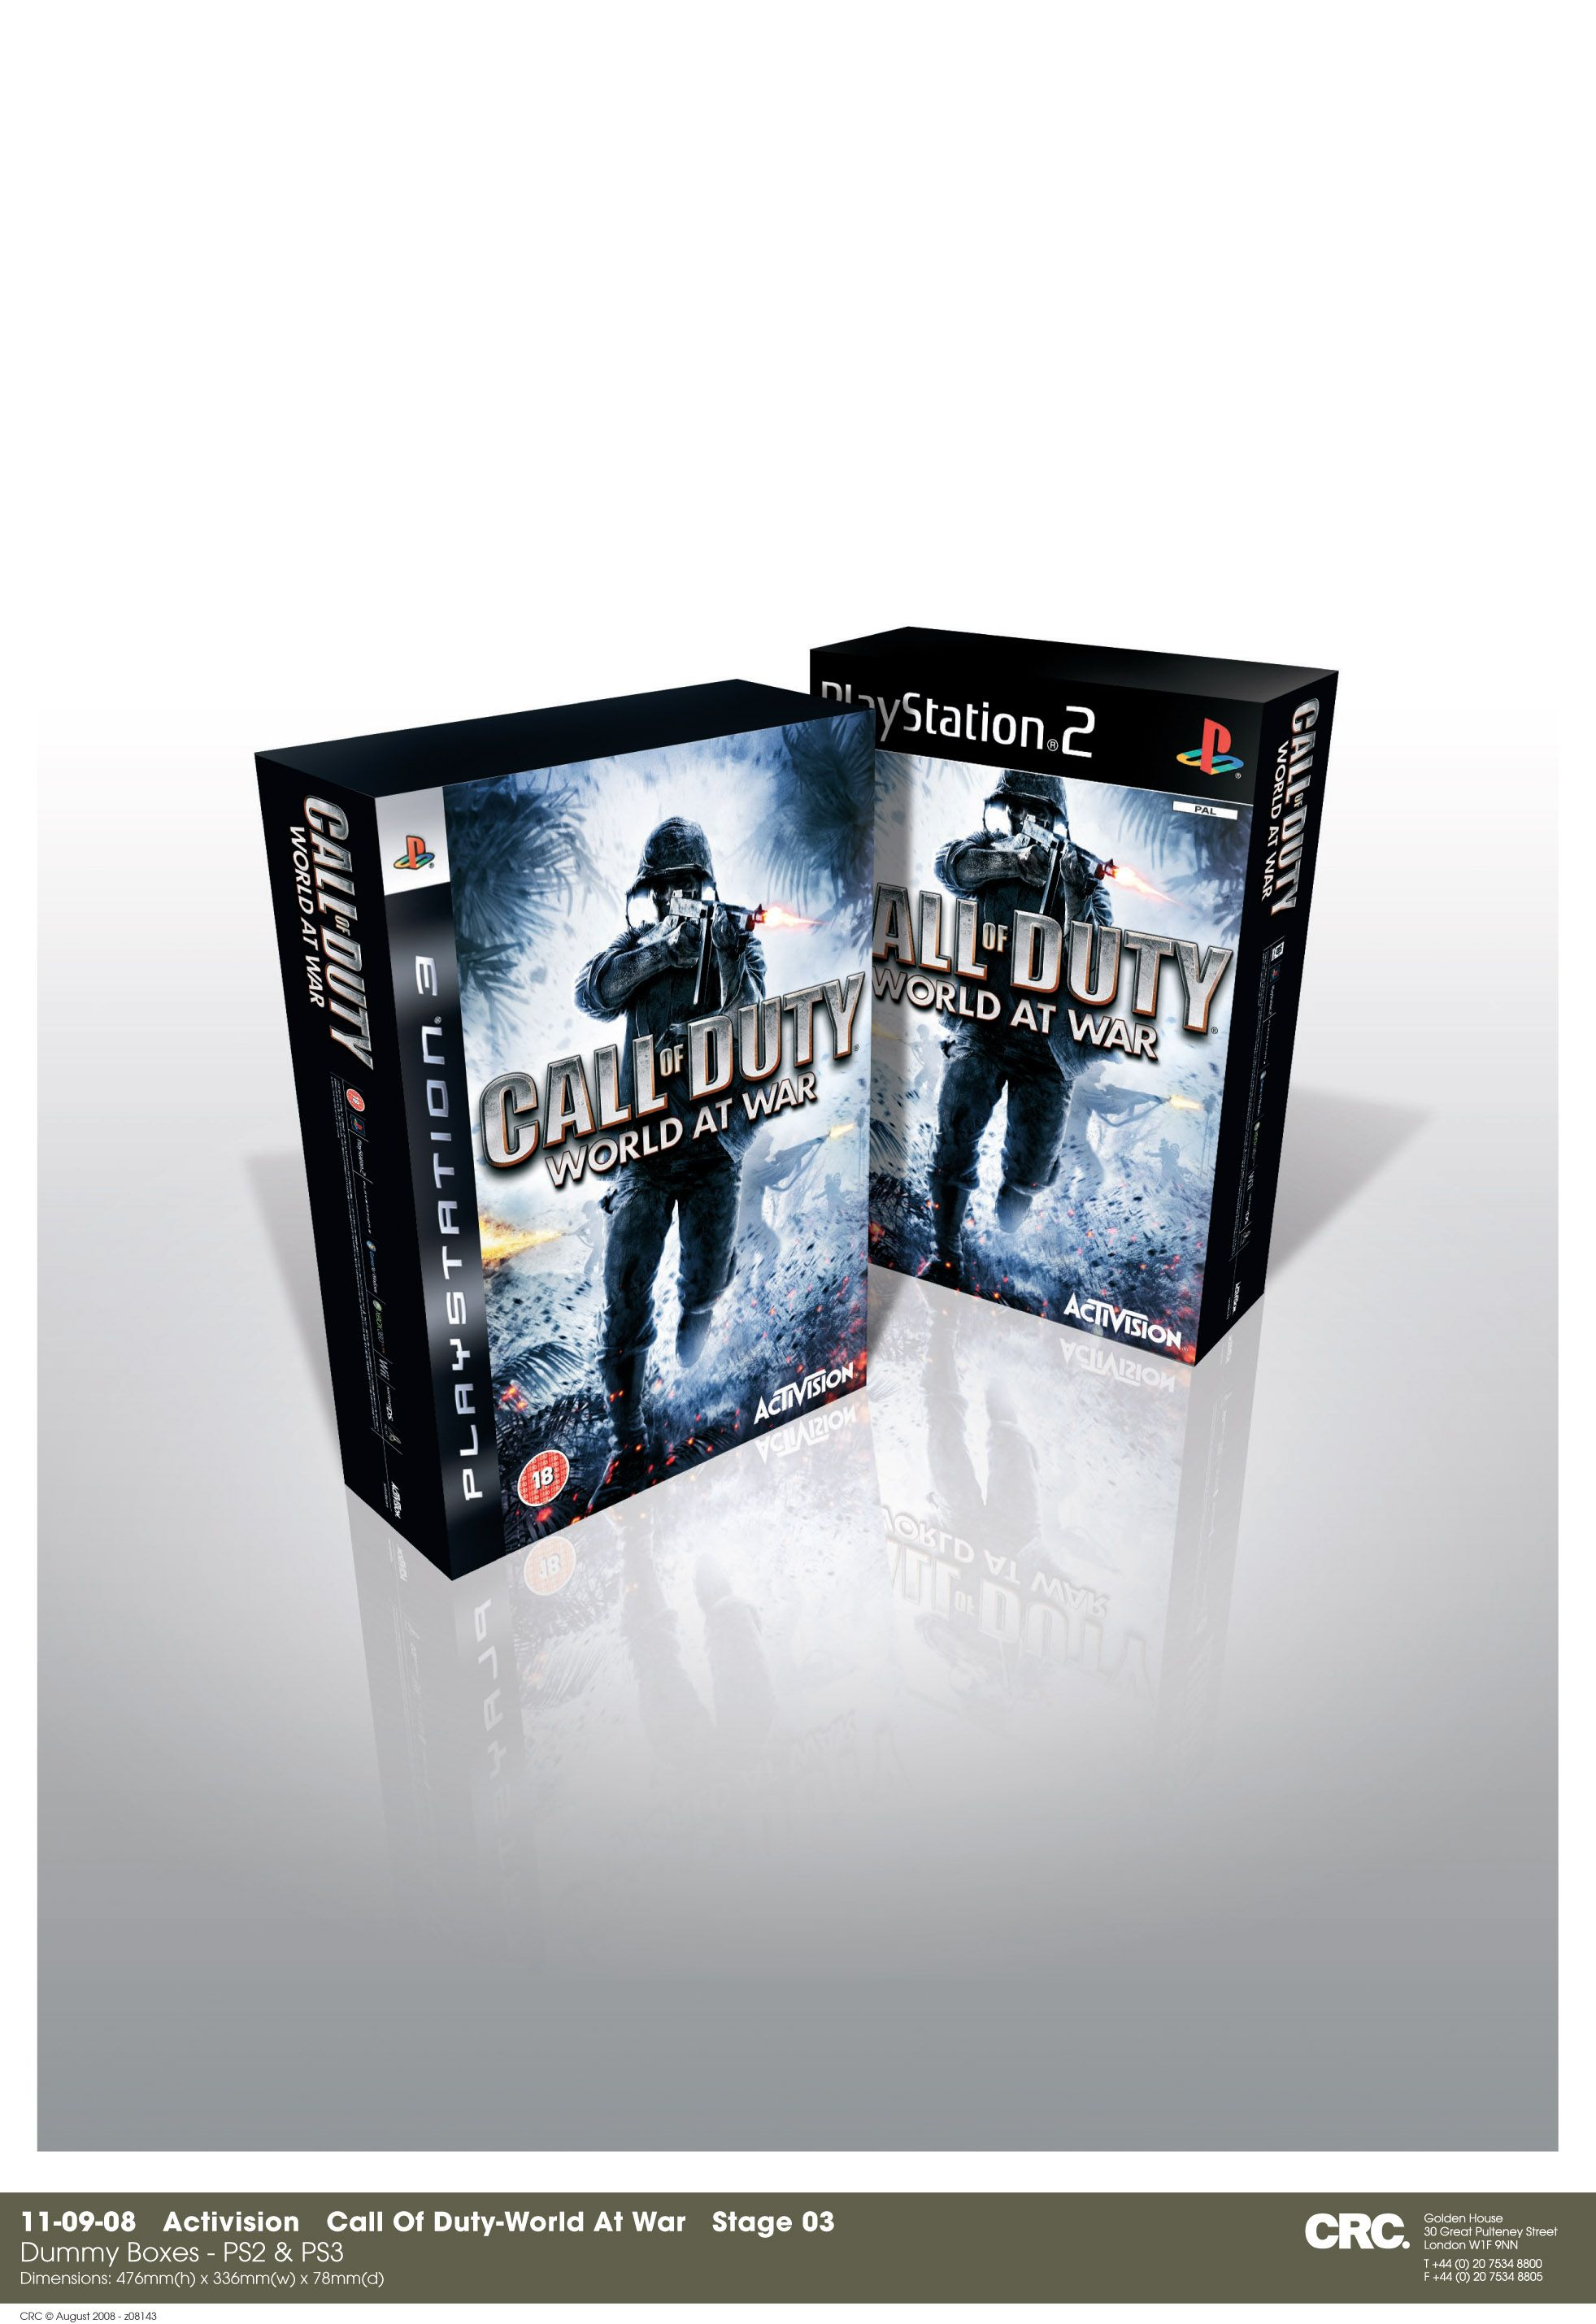 Call of Duty: World at War dummy boxes (PS2 & PS3). Client: CRC, London. Circa 2009. © Sean Mowle.